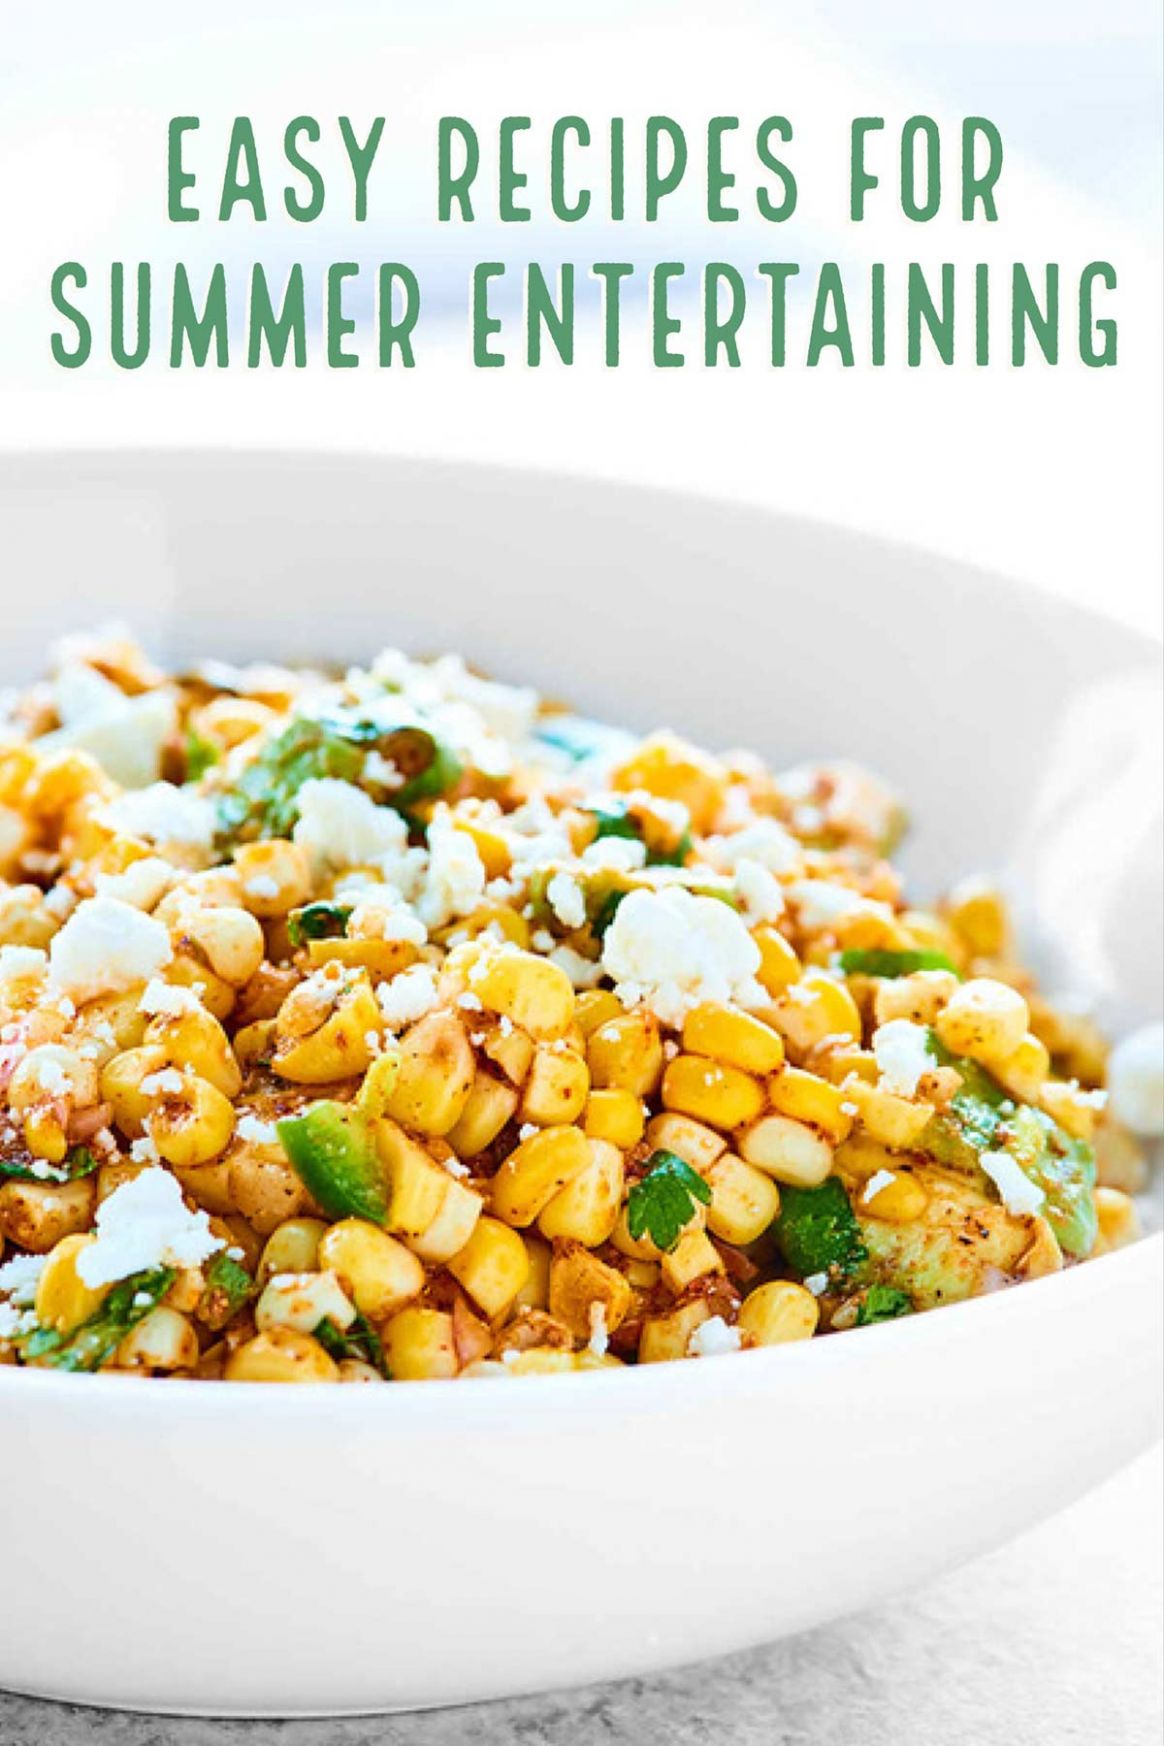 Easy Recipes for Summer Entertaining - Show Me the Yummy - Recipes Summer Easy